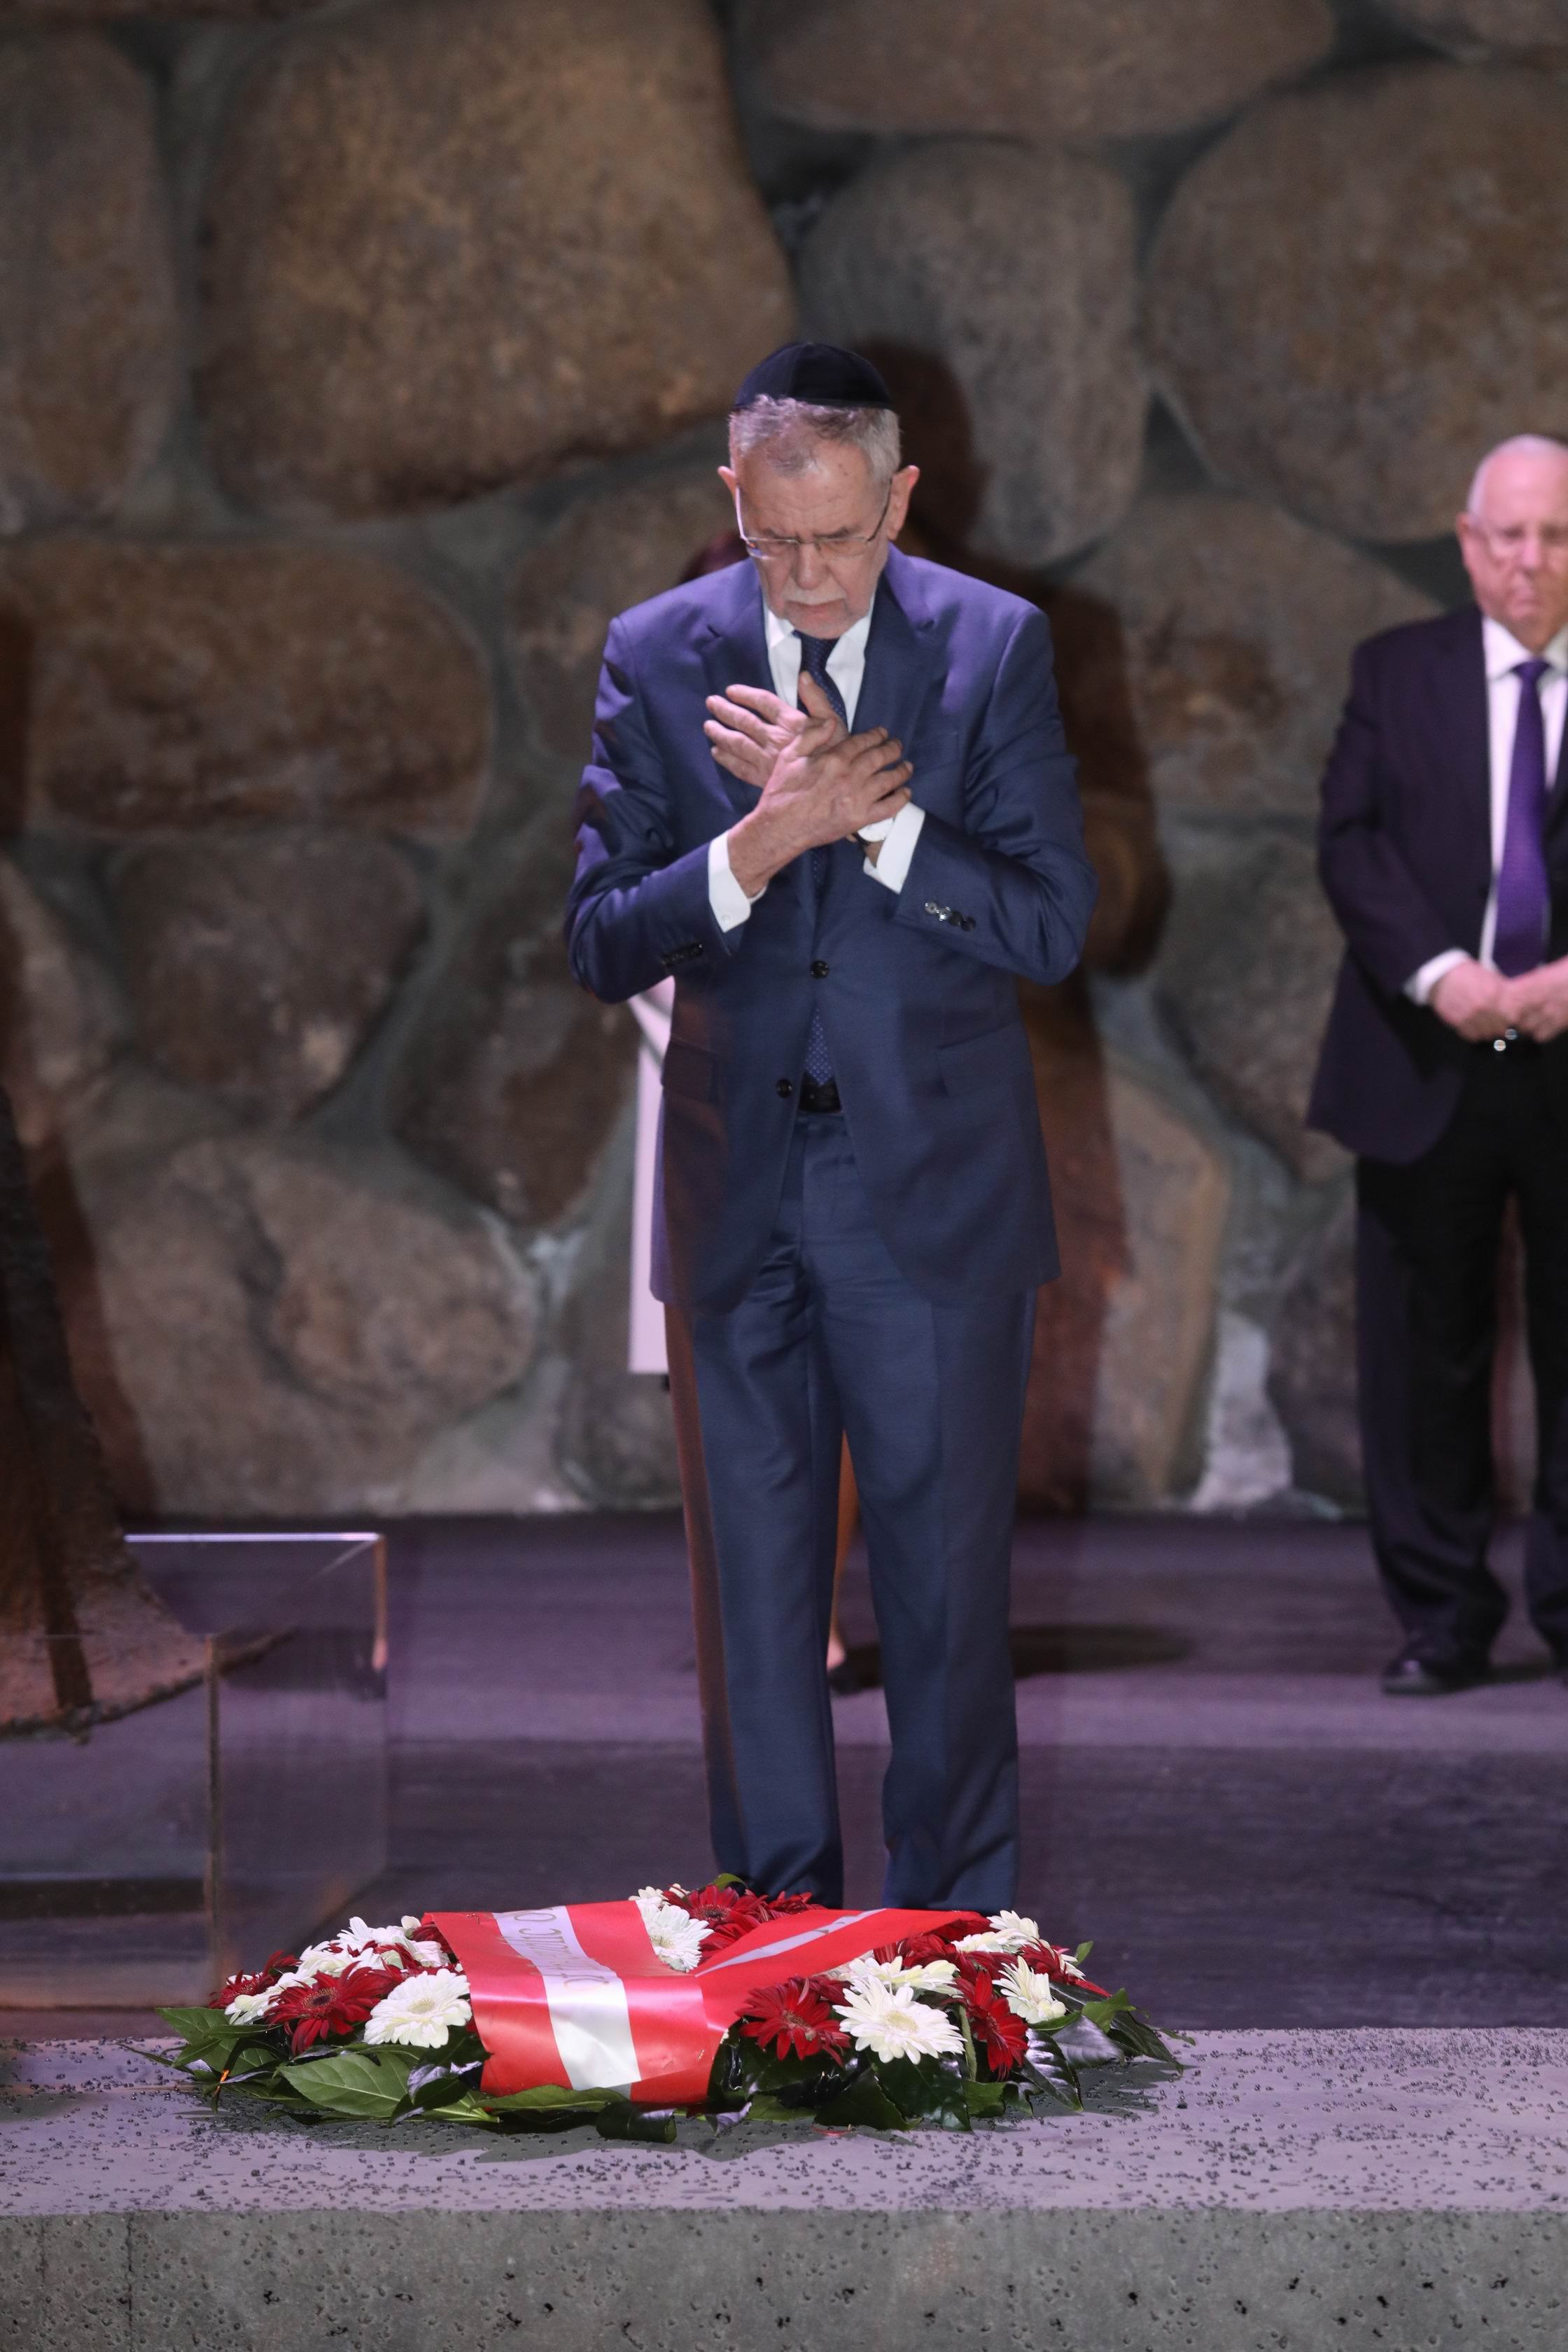 The President paid his respects to the six million victims of the Holocaust at the memorial ceremony